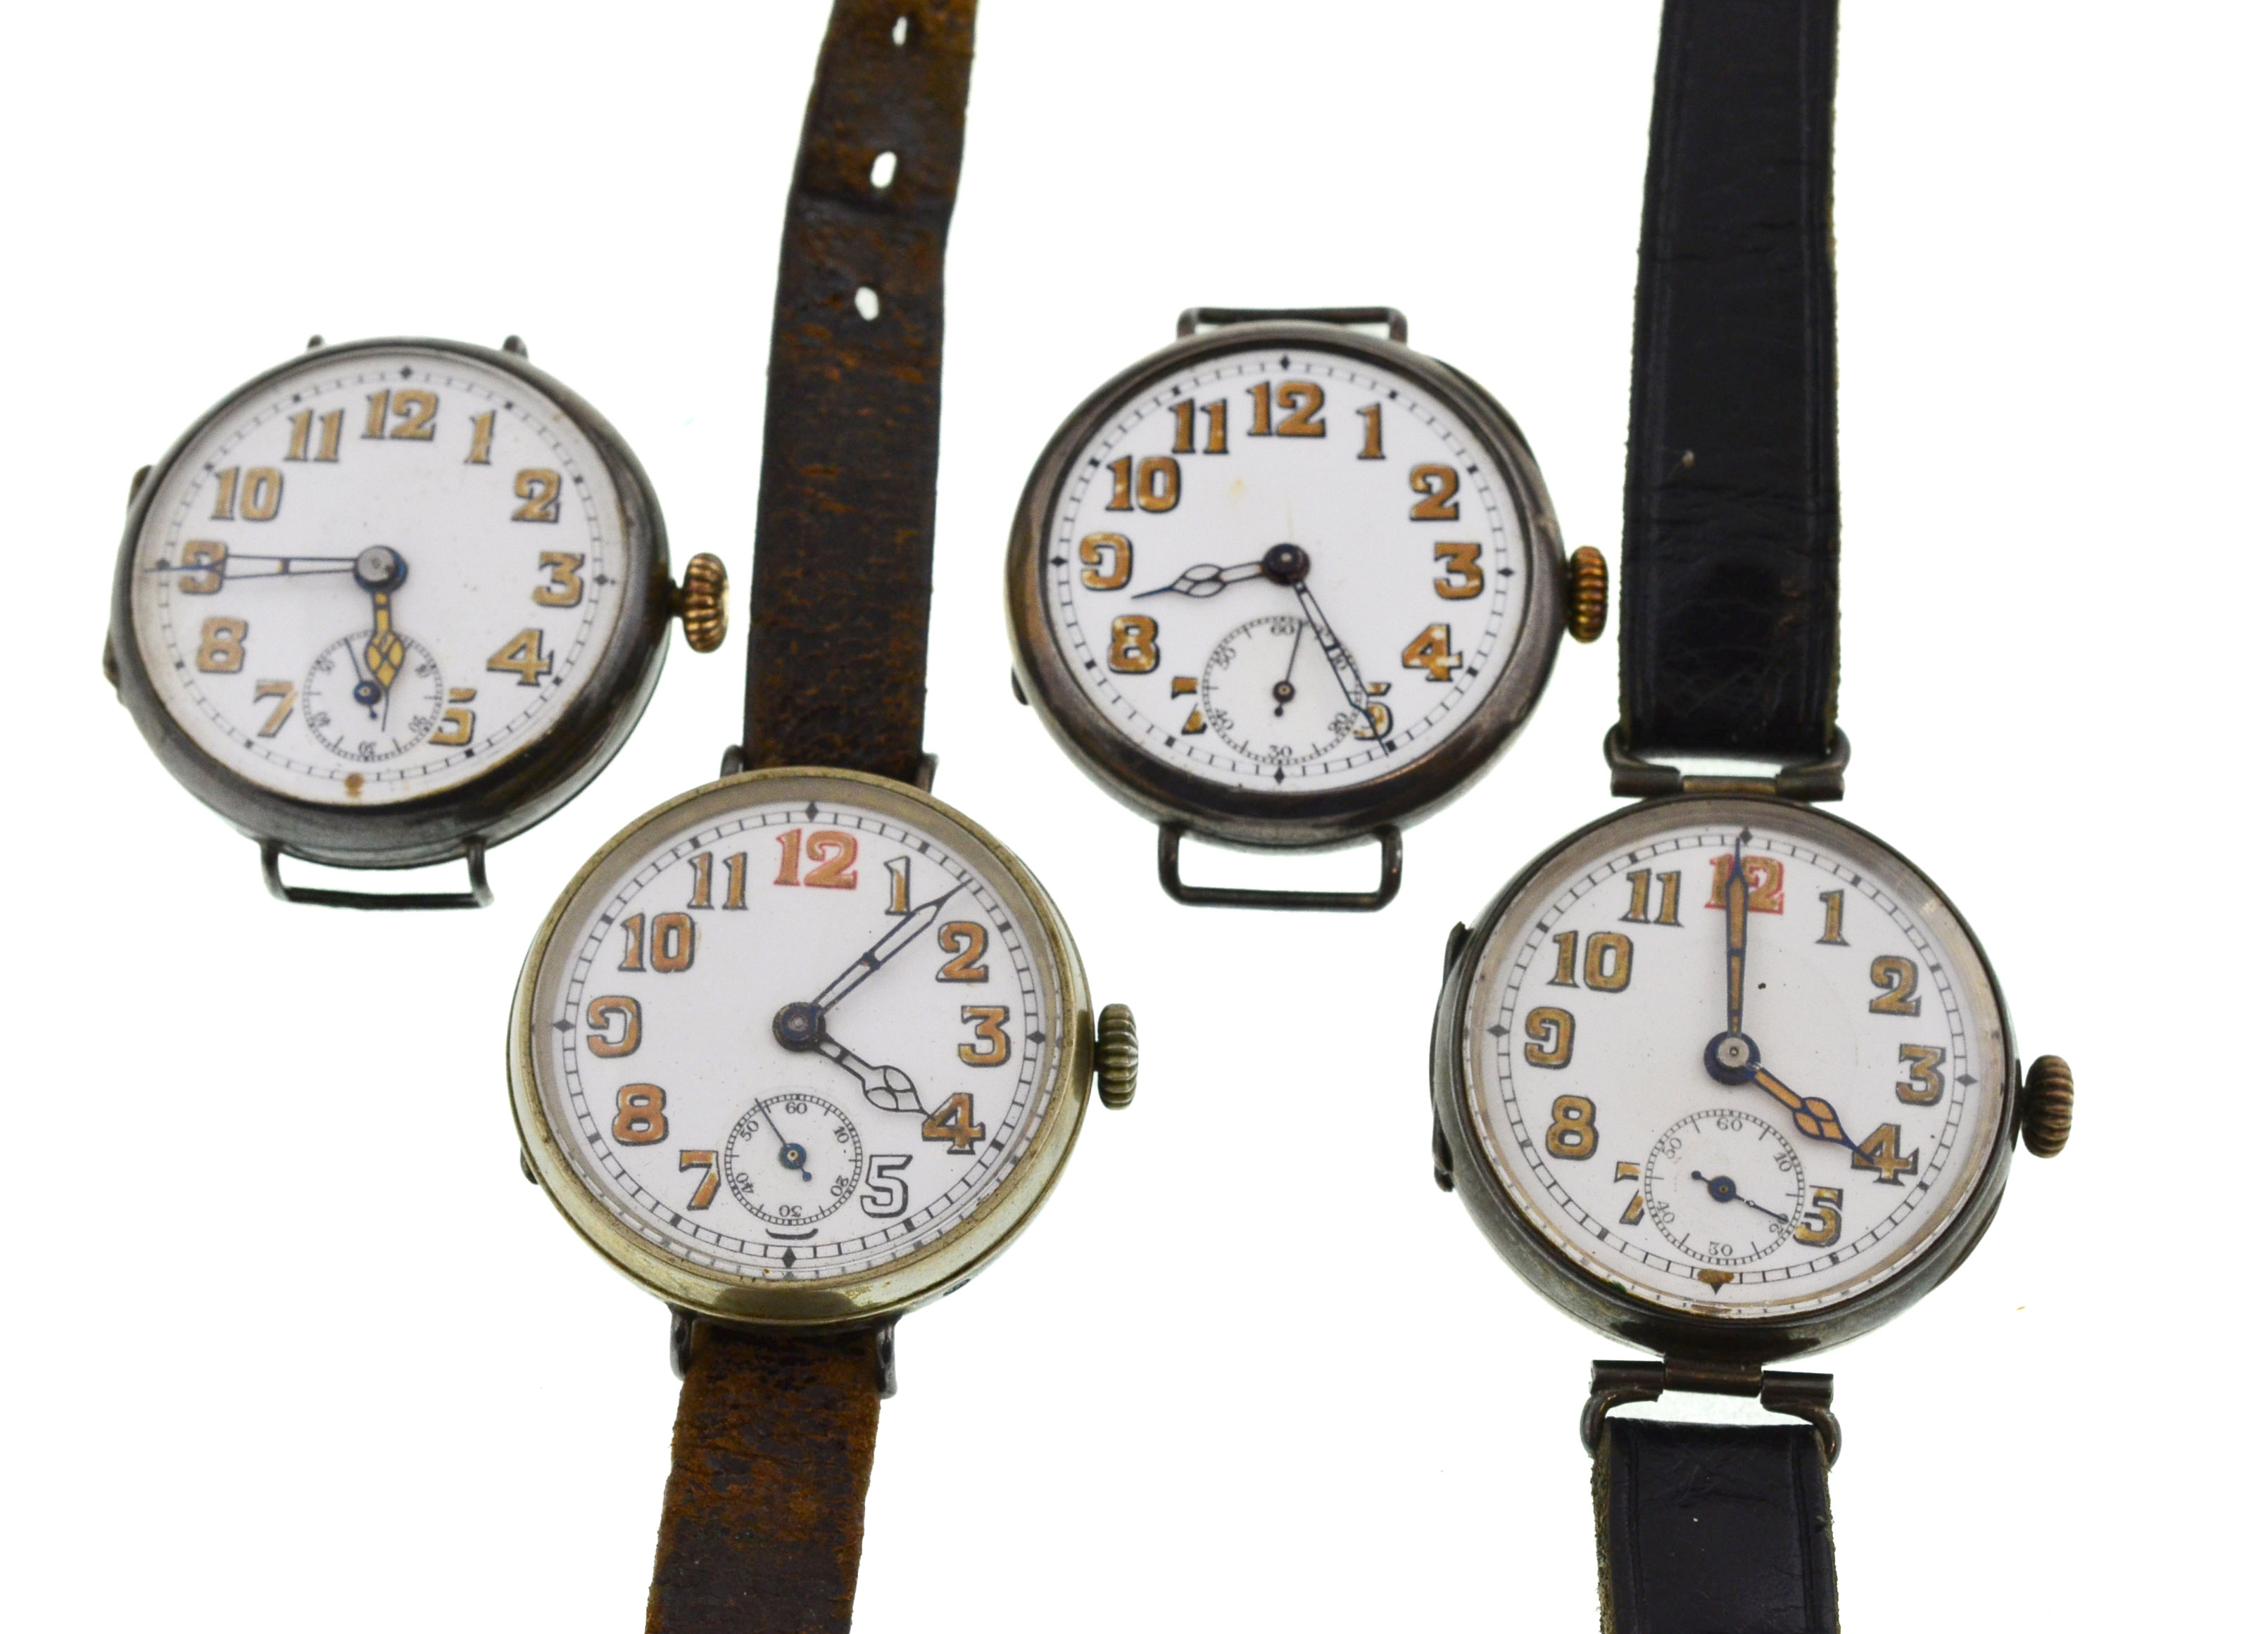 Lot 32 - Four early 20th century mechanical silver watches, all with uncracked white enamel dials,